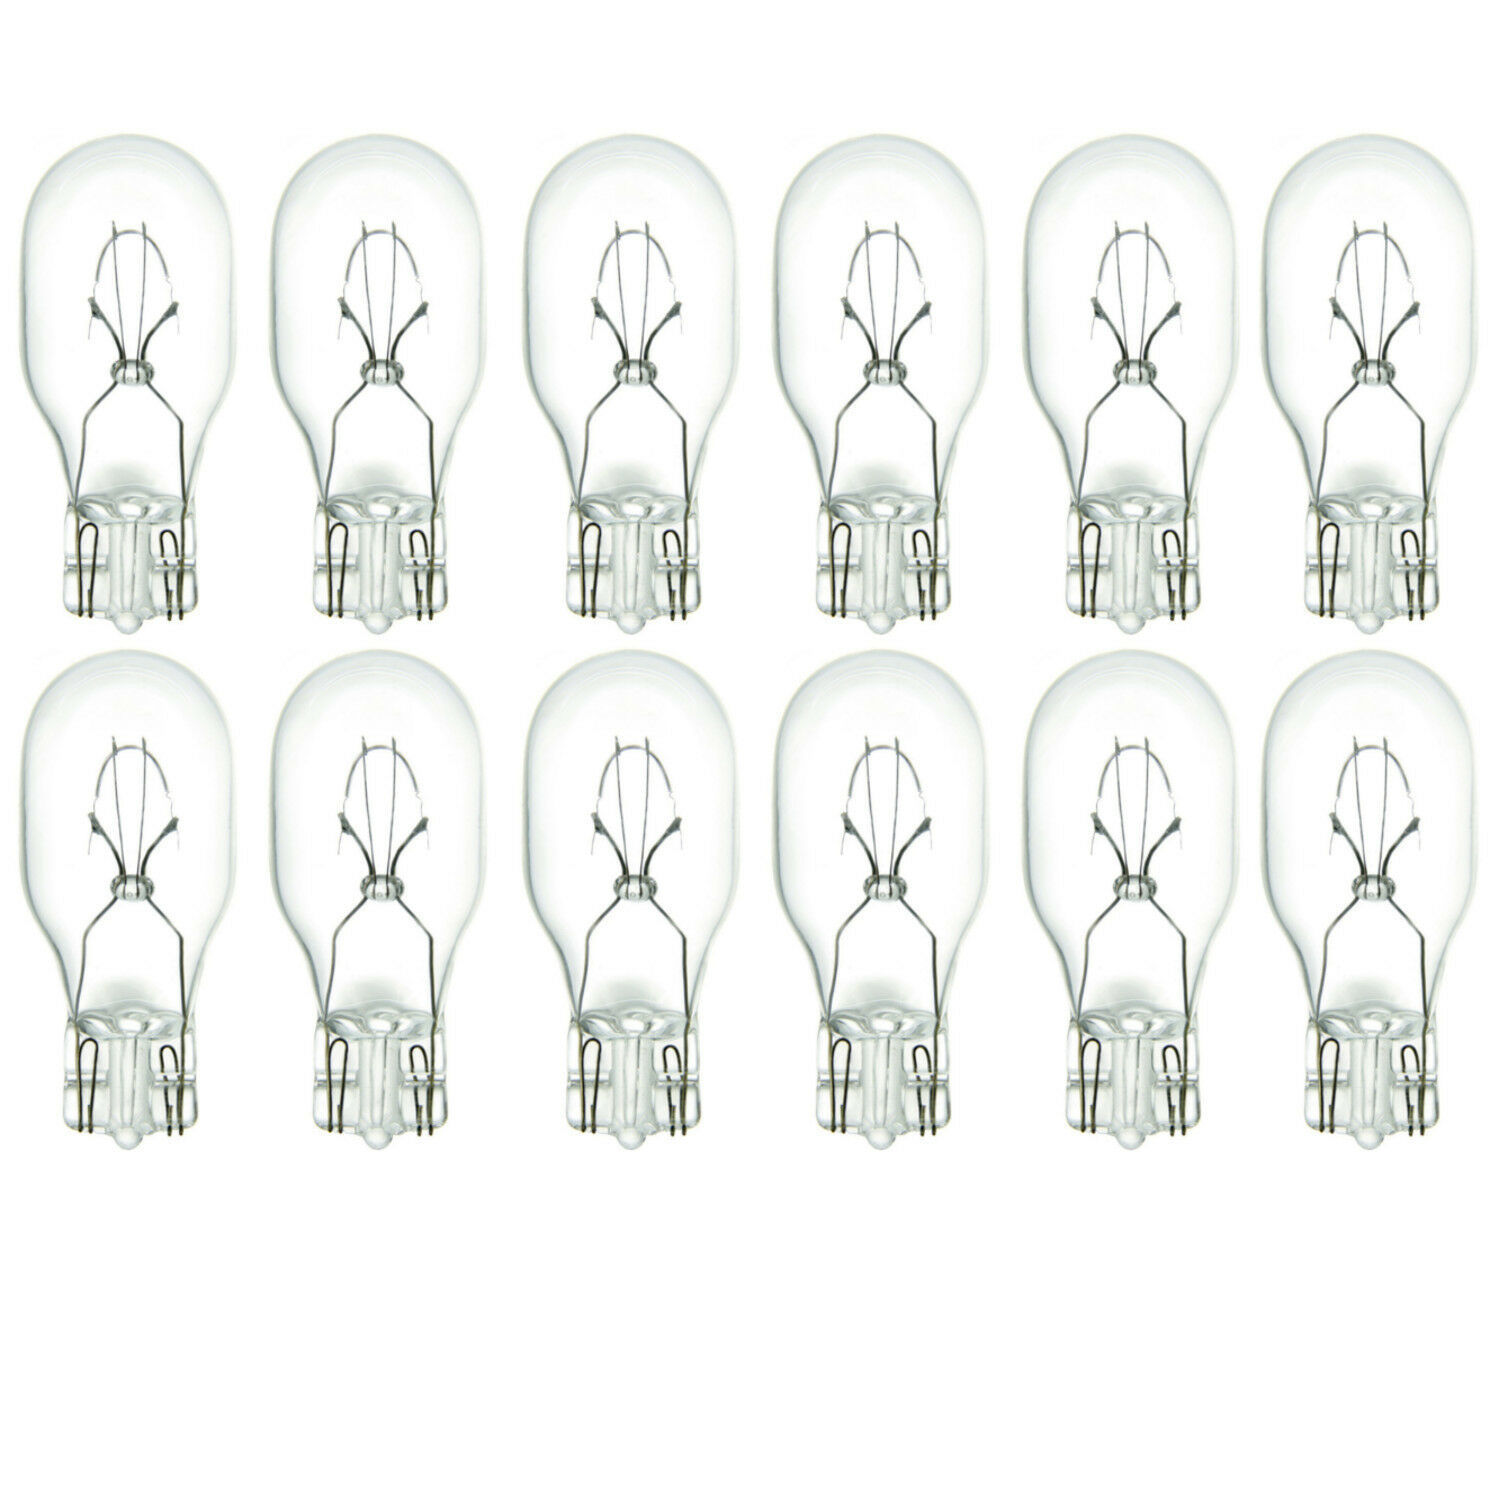 Satco 915 Miniatures Miniature Light 9w W2 1x9 5d T5 Bulb Pack Of 12